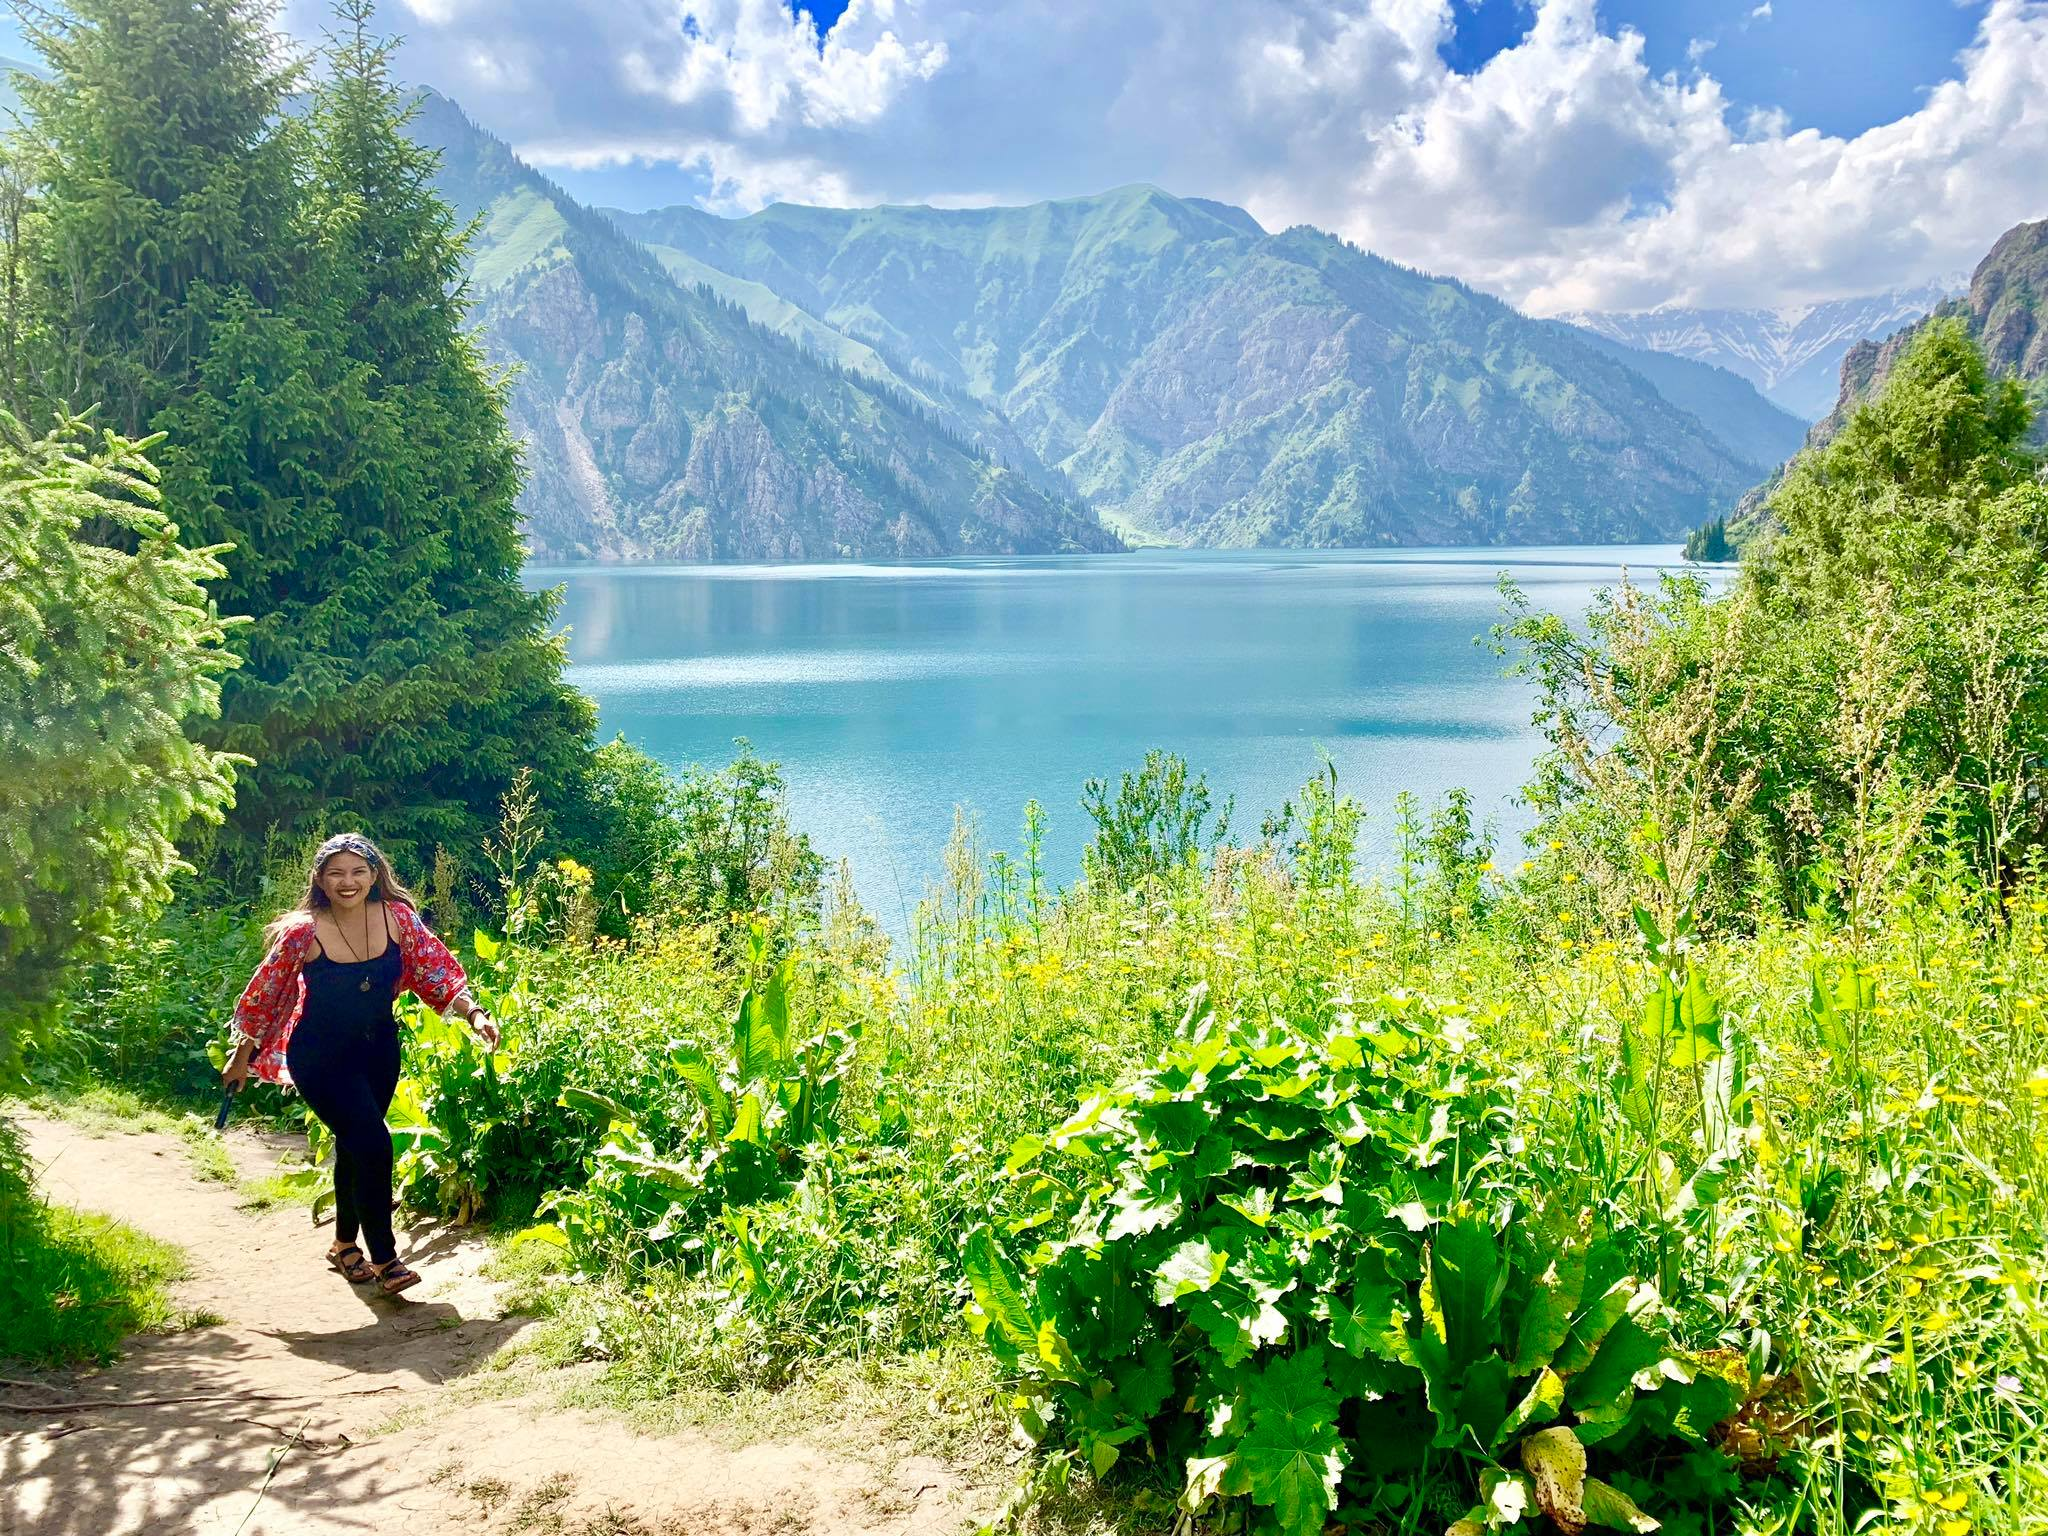 Kach Solo Travels in 2019 Roadtrip to Sary Chelek Lake which is 330 km. from Osh, Kyrgyzstan3.jpg